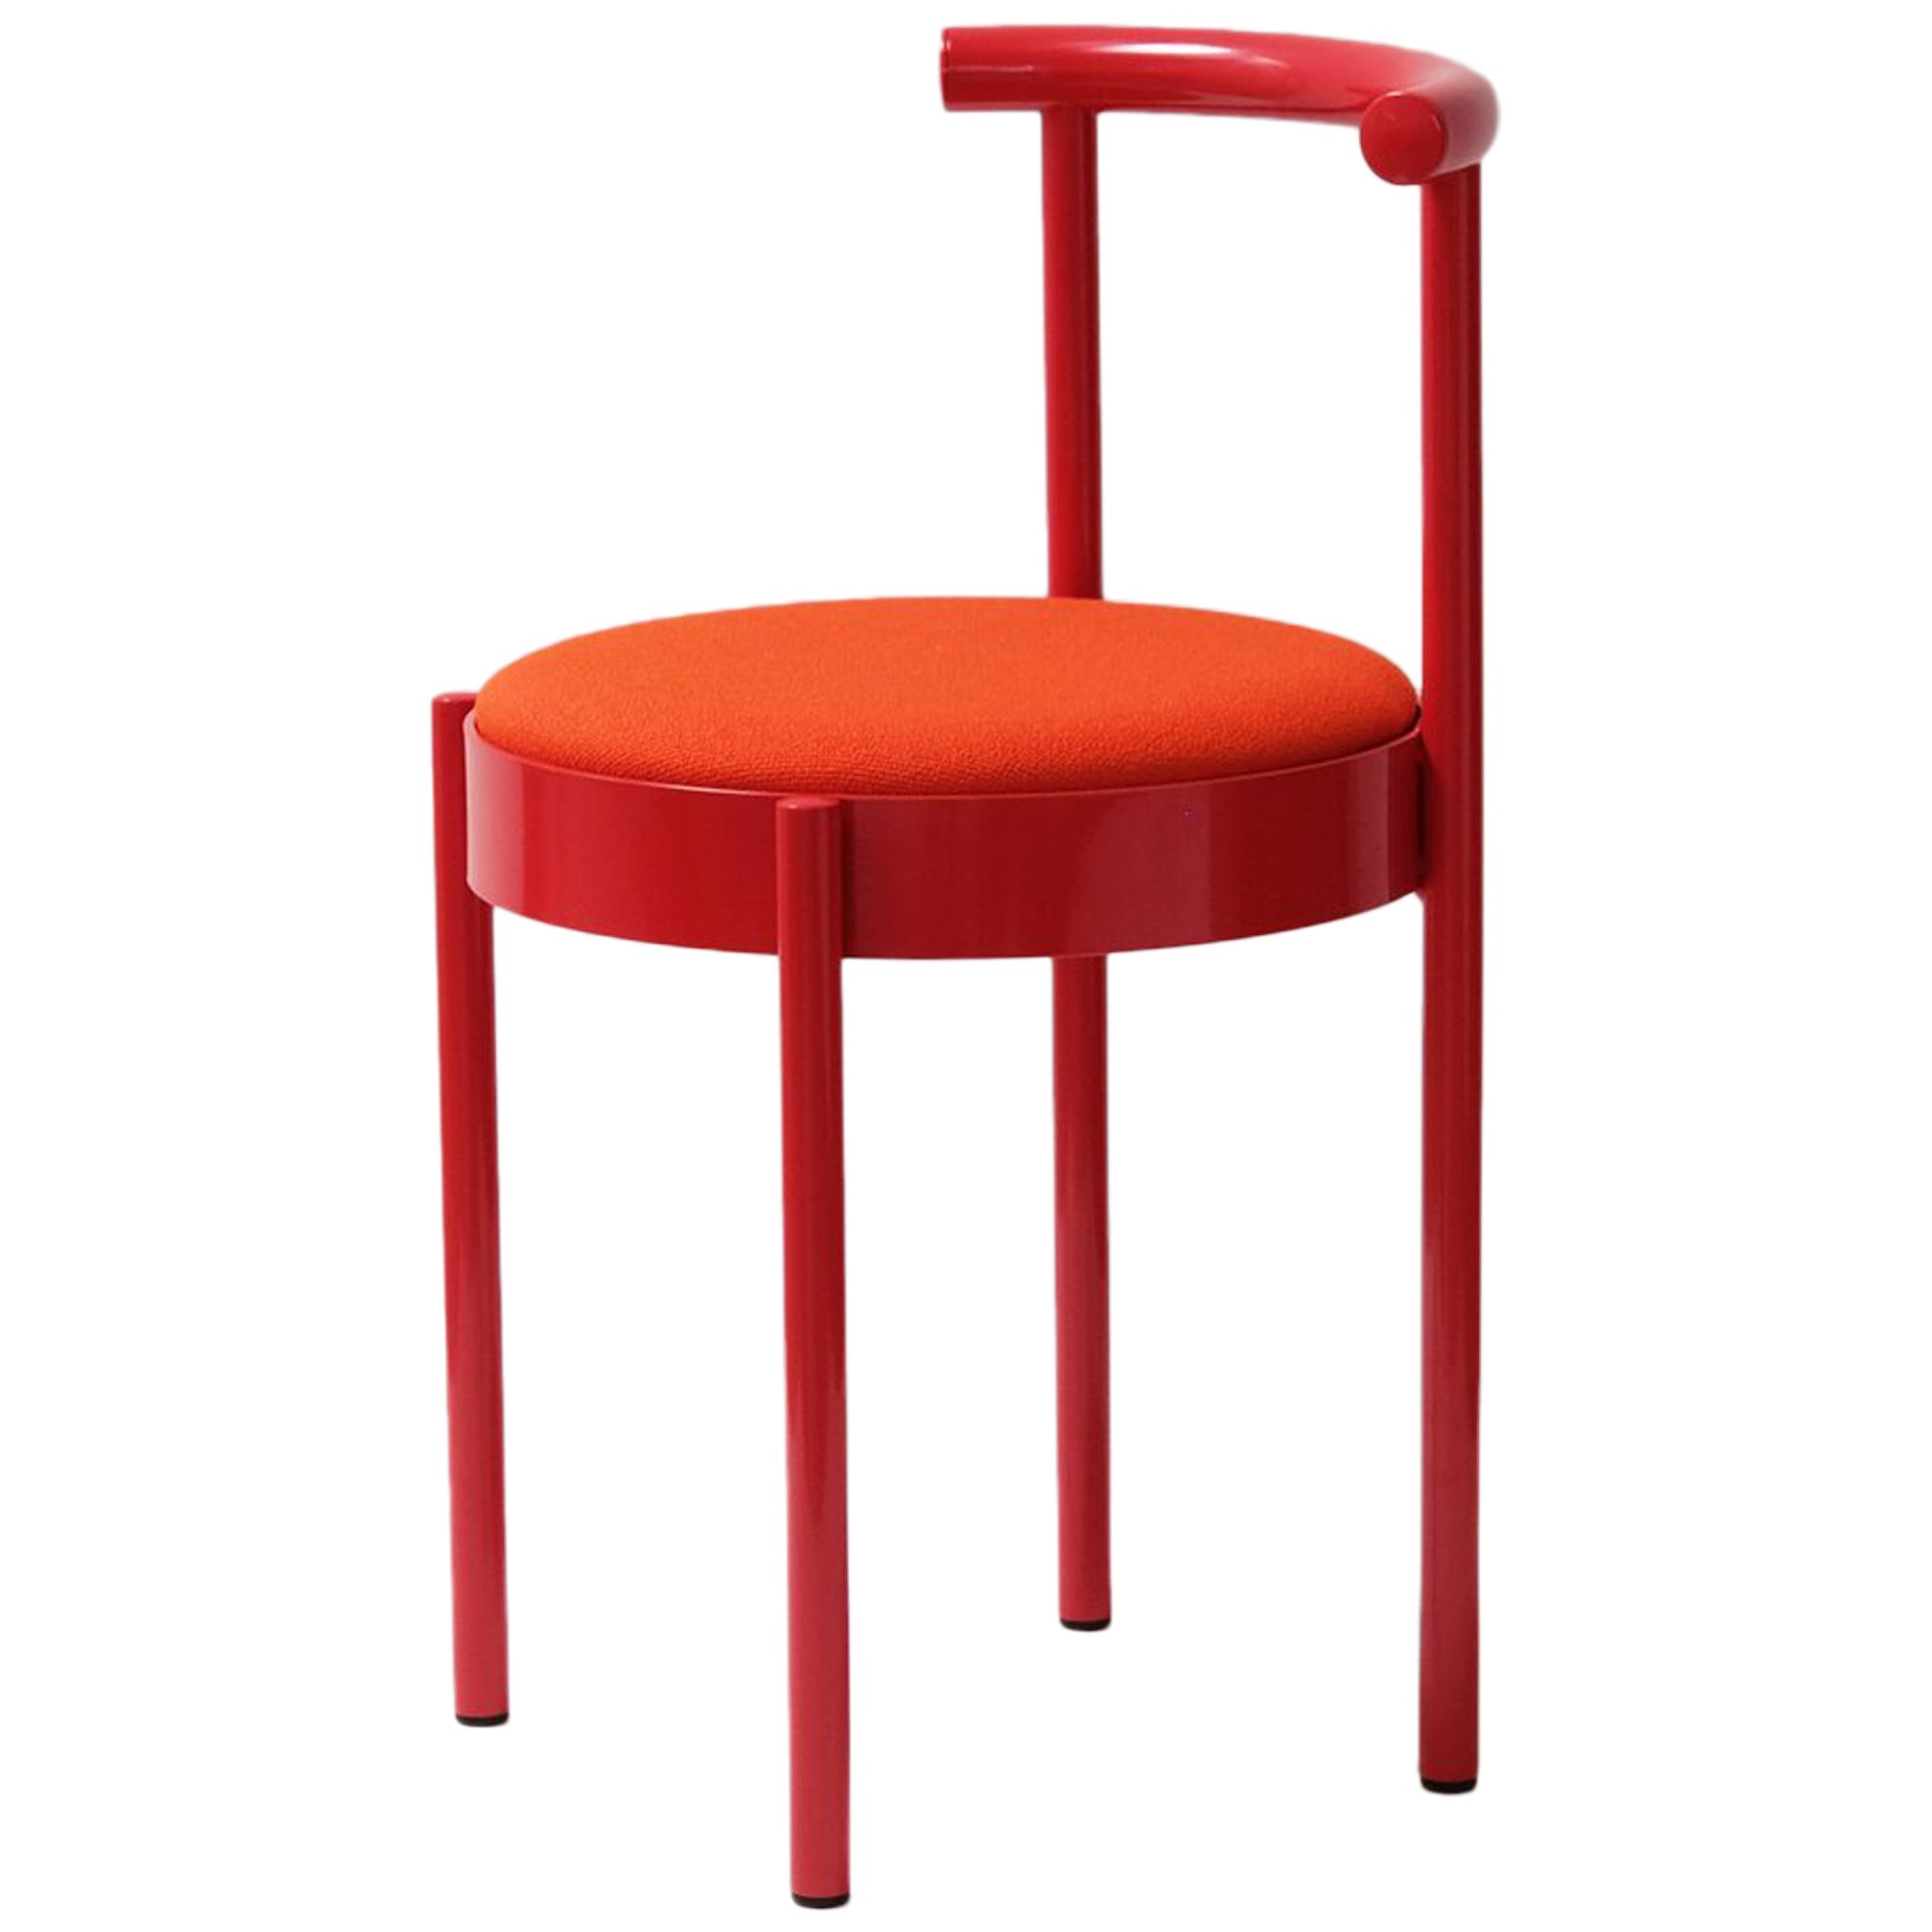 Soft Red Chair by Daniel Emma, Made in Australia